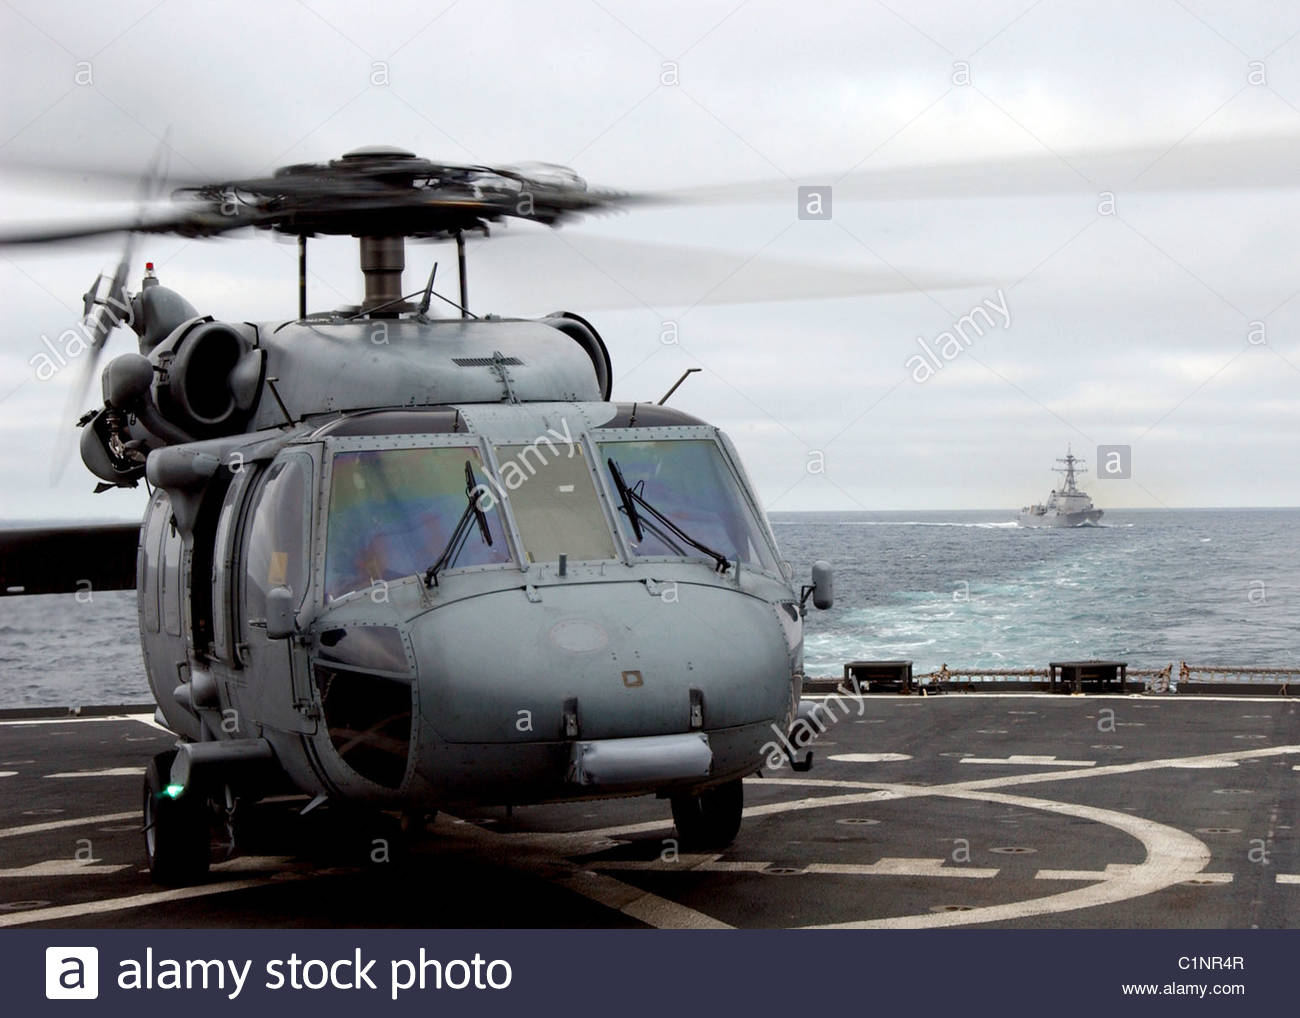 MH-60S Seahawk helicopter - Stock Image